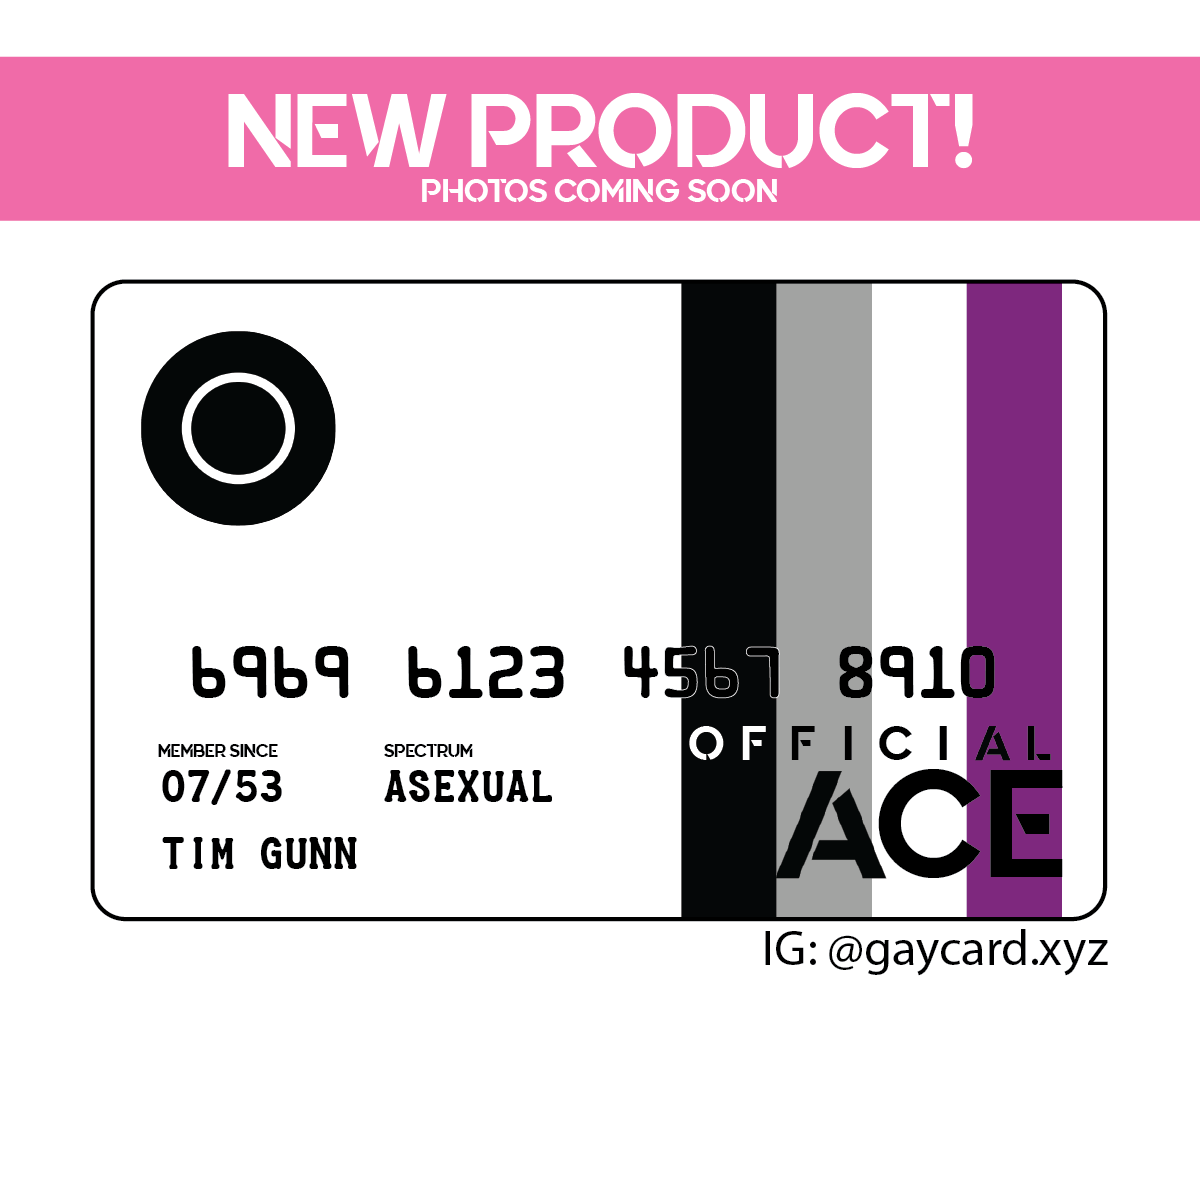 Official ACE Card - www.gaycard.xyz